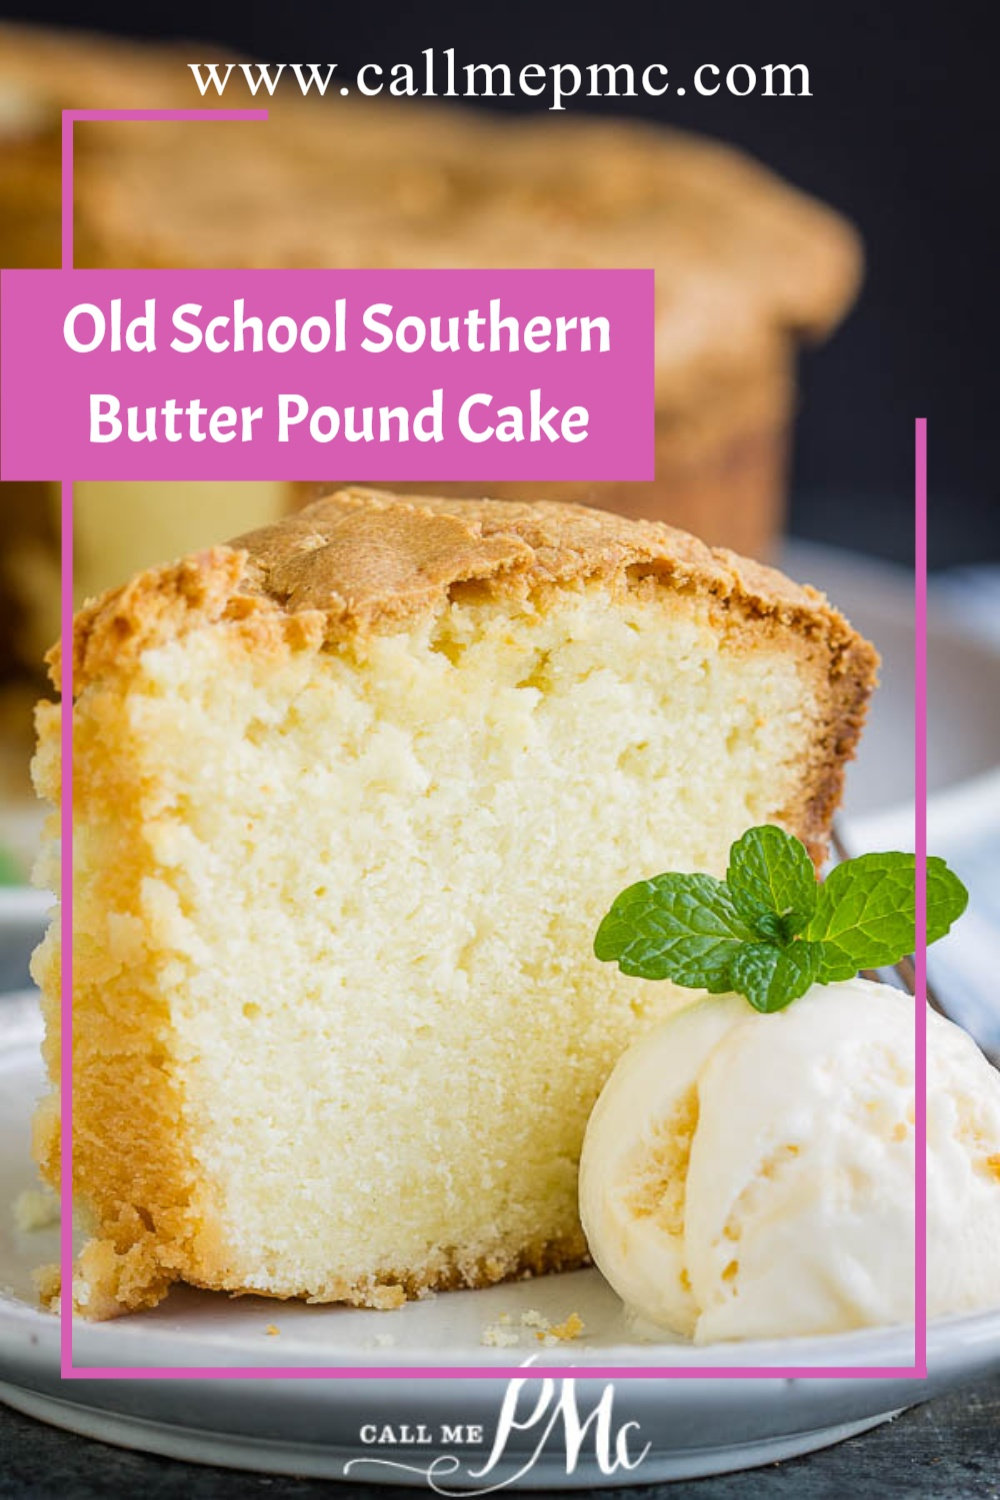 Old School Southern Butter Pound Cake is moist, tender, fine-crumbed, and loaded with a buttery flavor. Learn how to make a perfect pound cake with my simple tips.#cake #poundcake #poundcakepaula #dessert #recipes #callmepmc #moist #easy #Southern